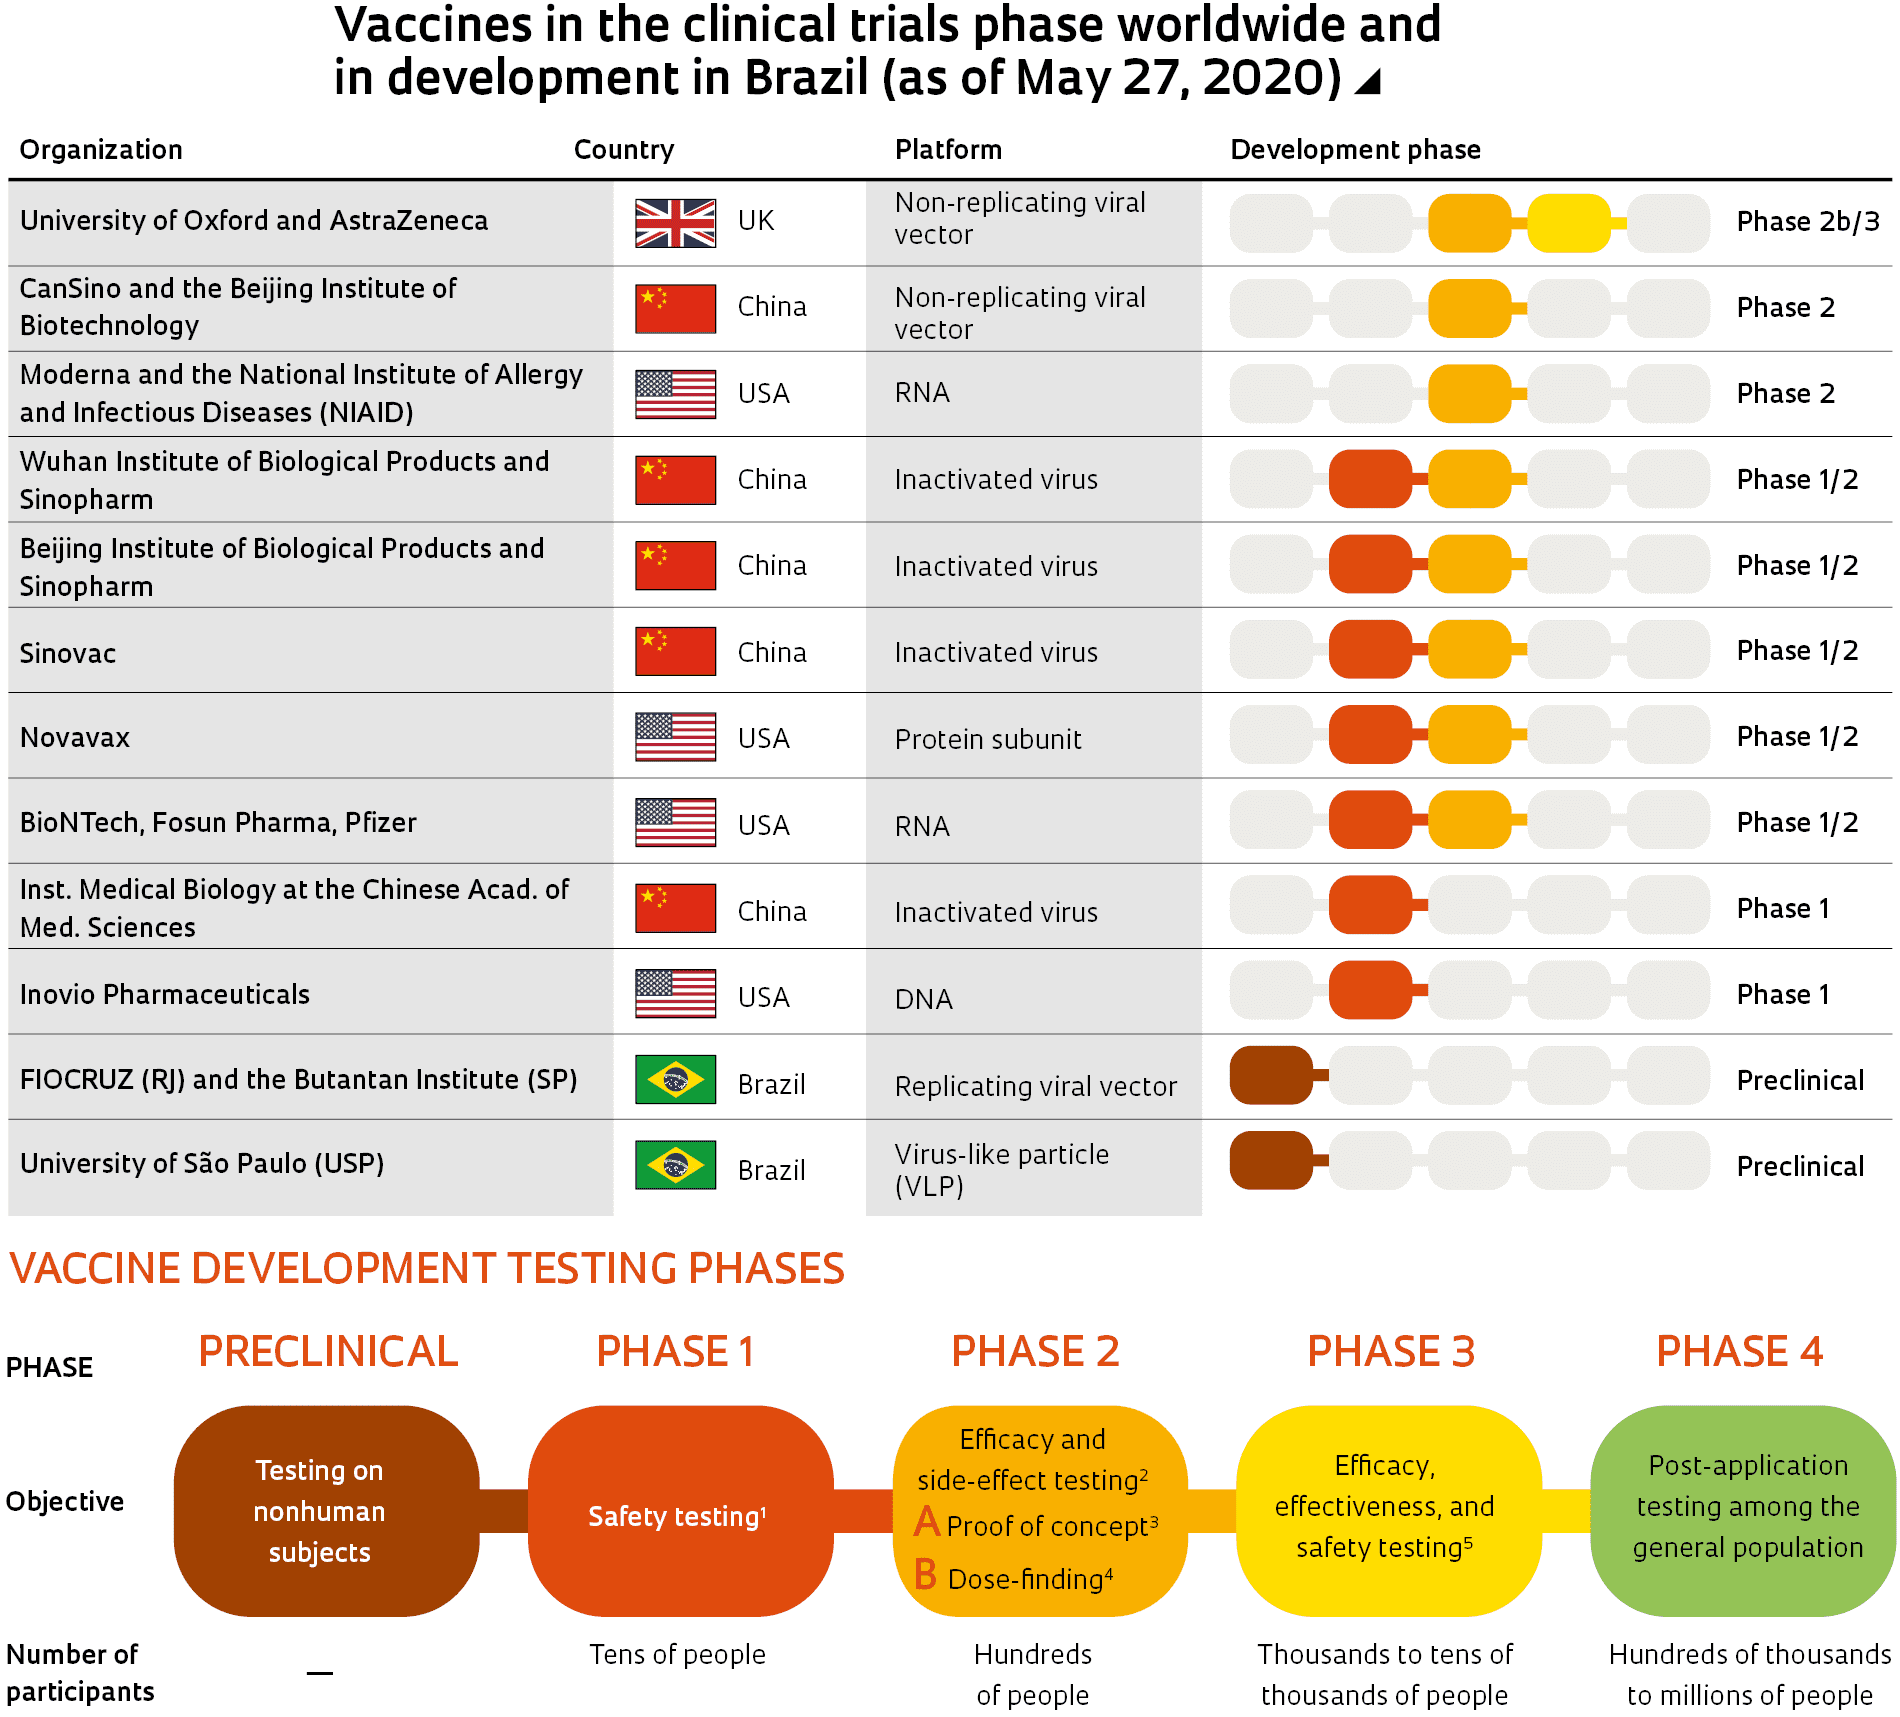 Vaccines in the clinical trials phase worldwide and in development in Brazil (as of May 27, 2020)